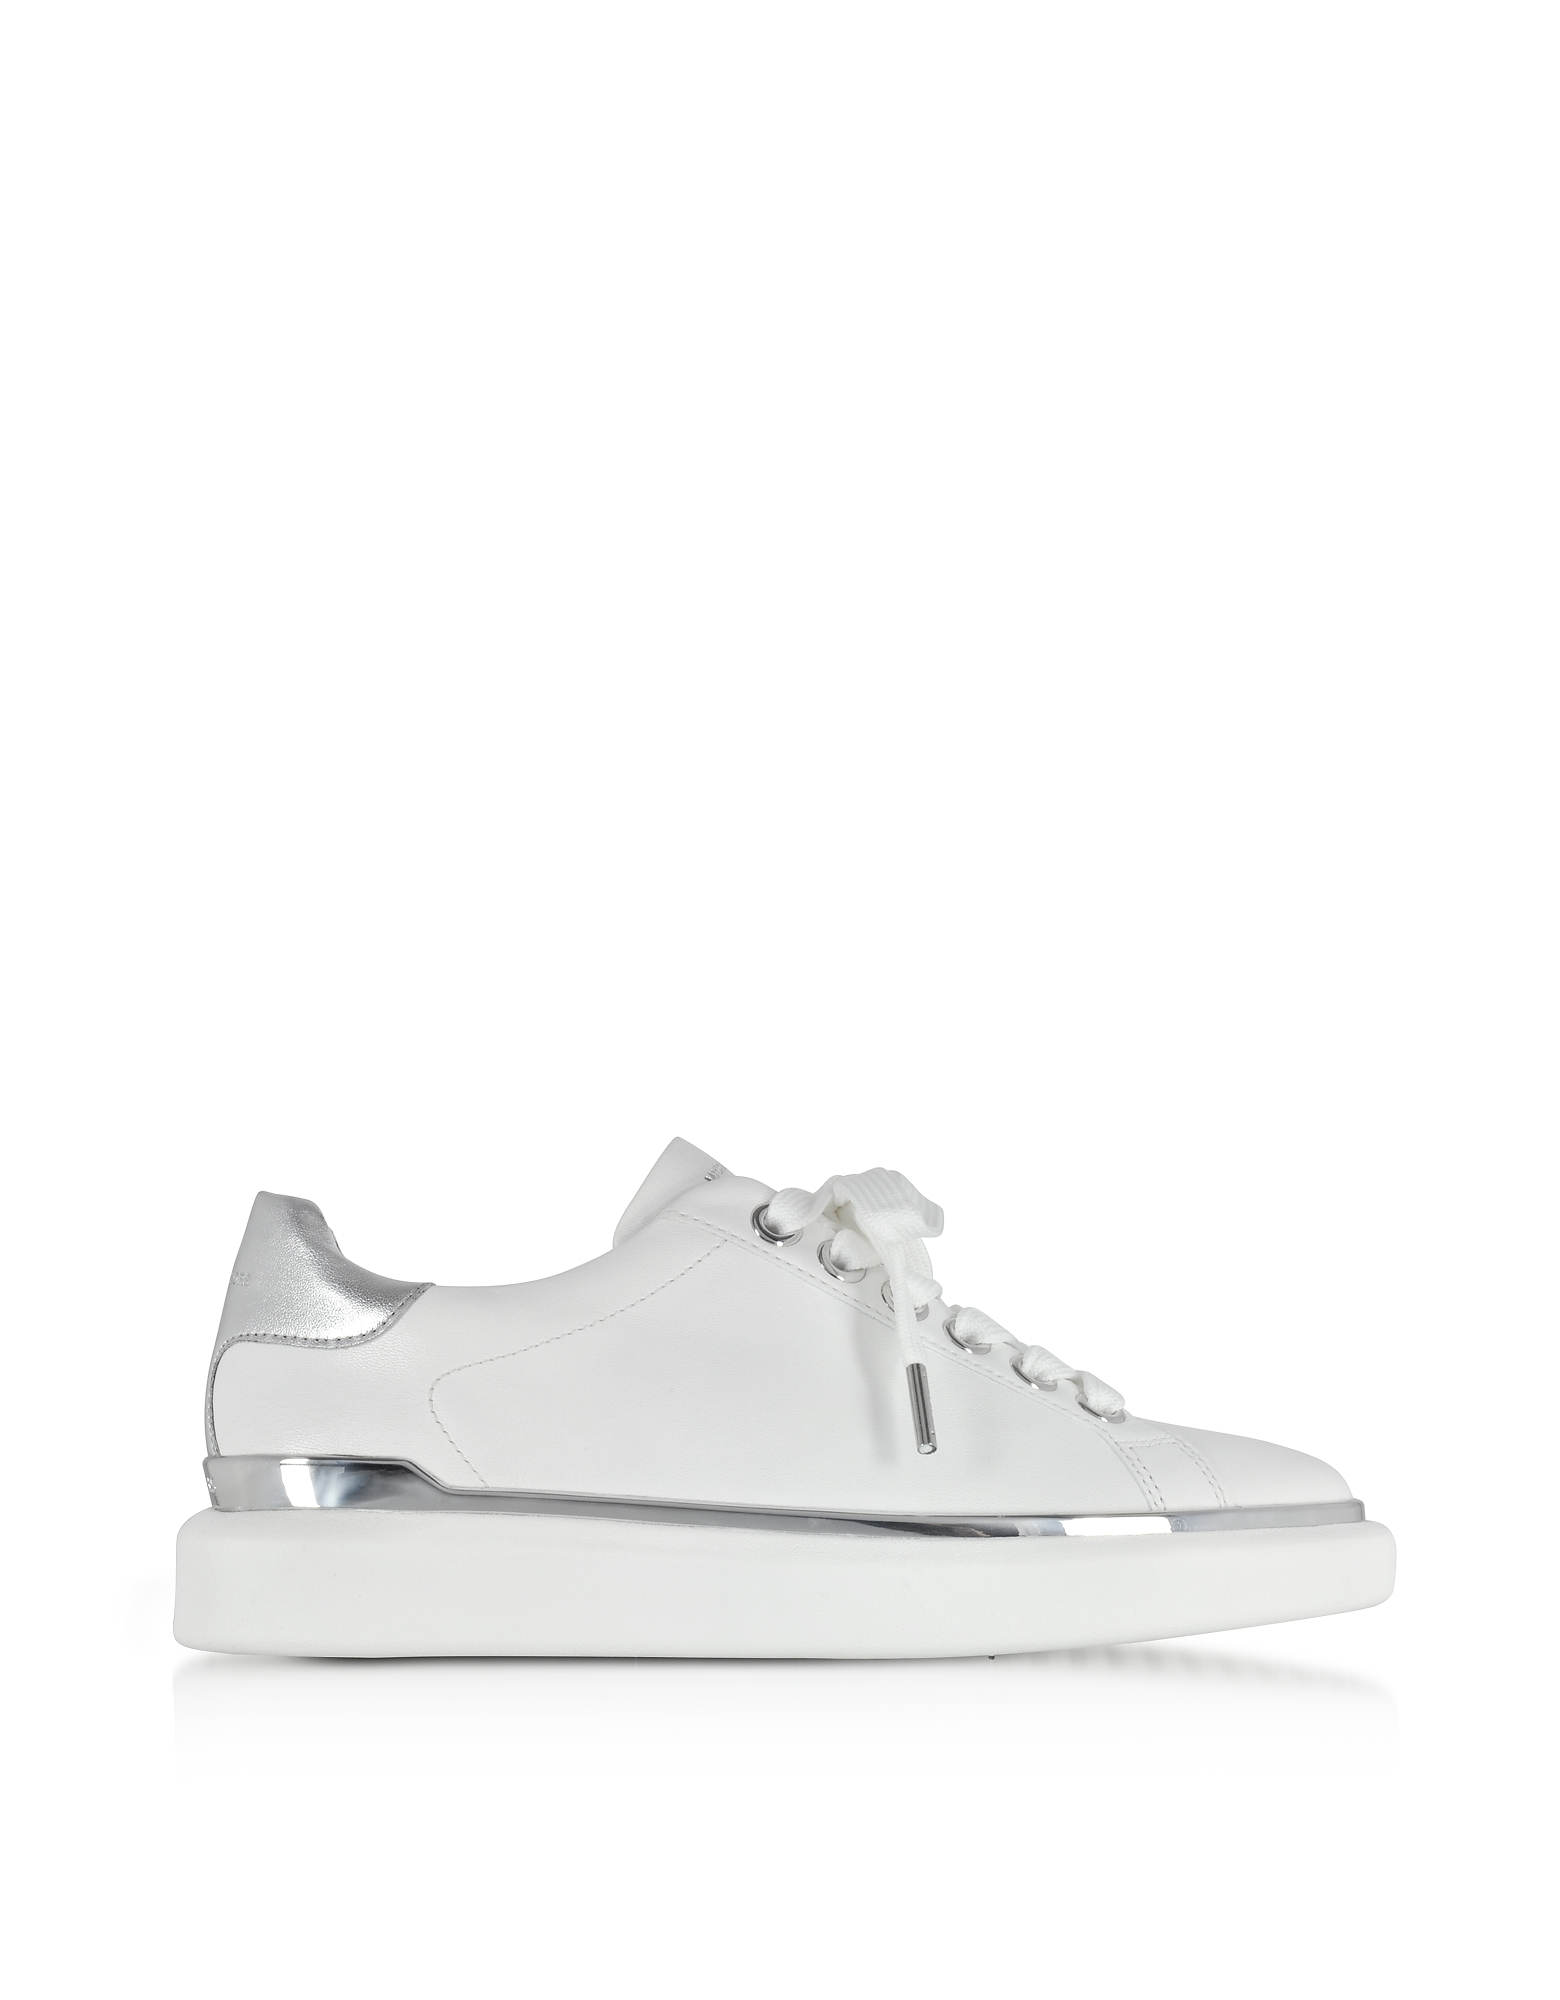 Michael Kors Shoes, Max Optic White Nappa Leather Lace Up Sneakers